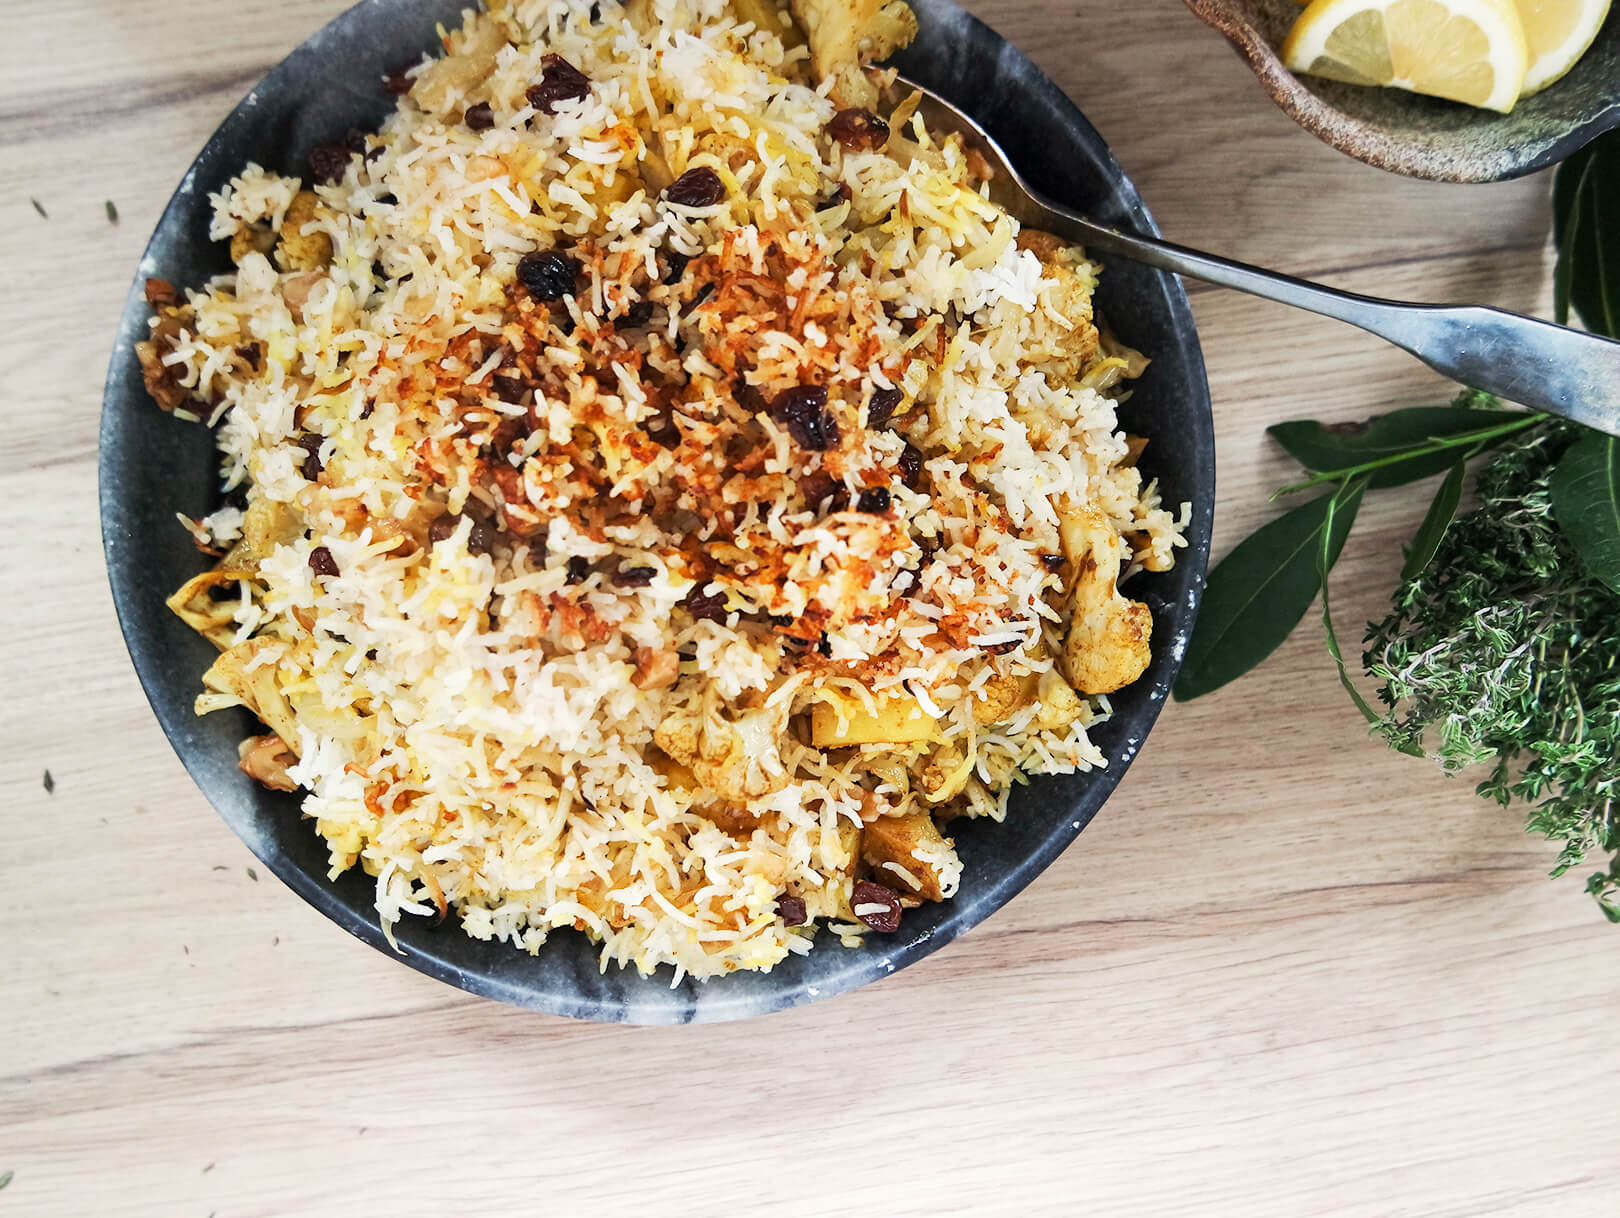 indiangoodsco_blog_recipes_easy indian food_weeknight dinner_special rice dish_ biryani_cauliflower_potato_fragrant_simple_vegan_glutenfree_vegetarian_1